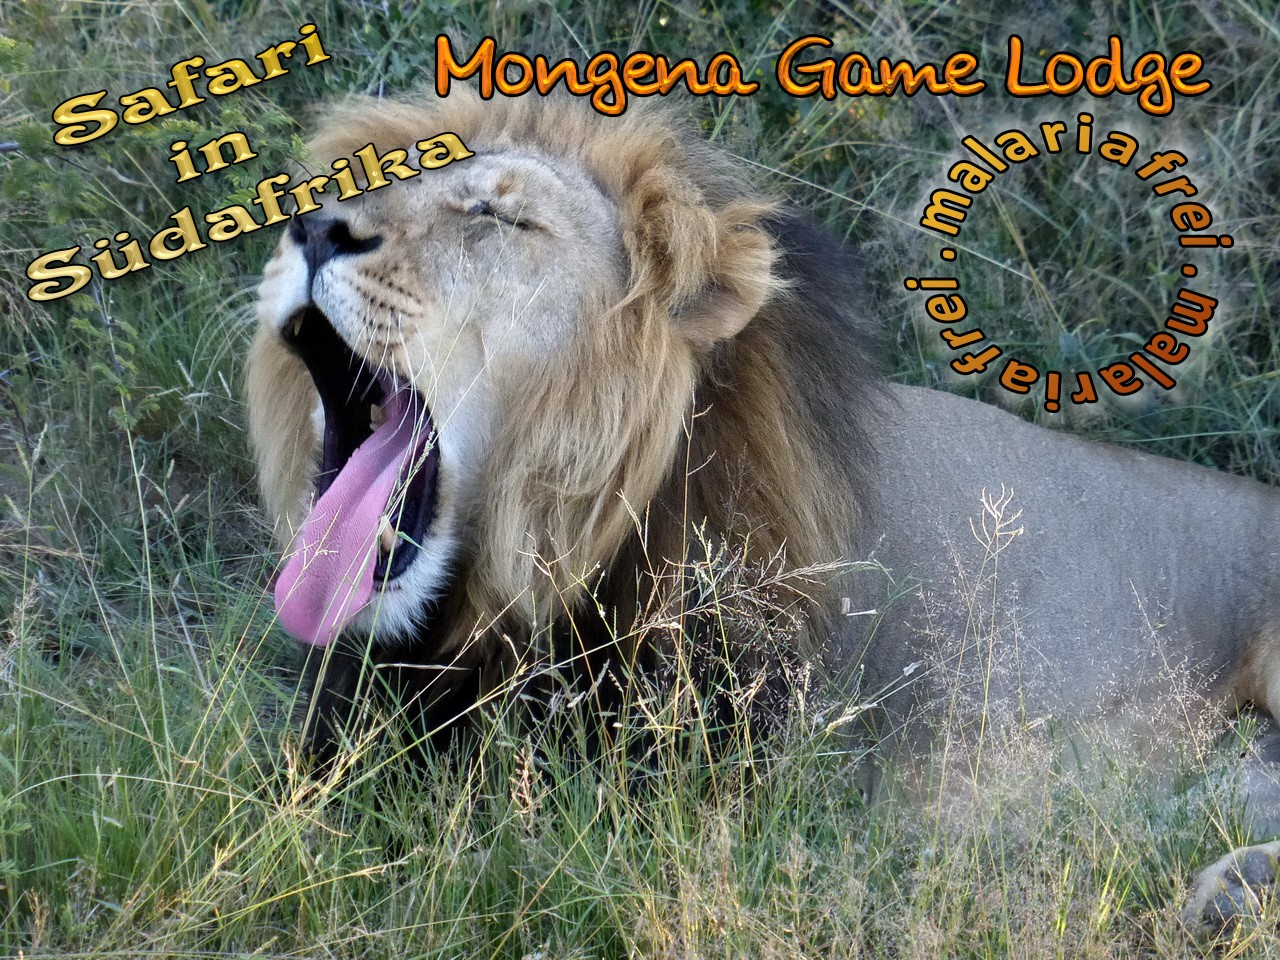 Südafrika Safari, malariafrei: Mongena Game Lodge